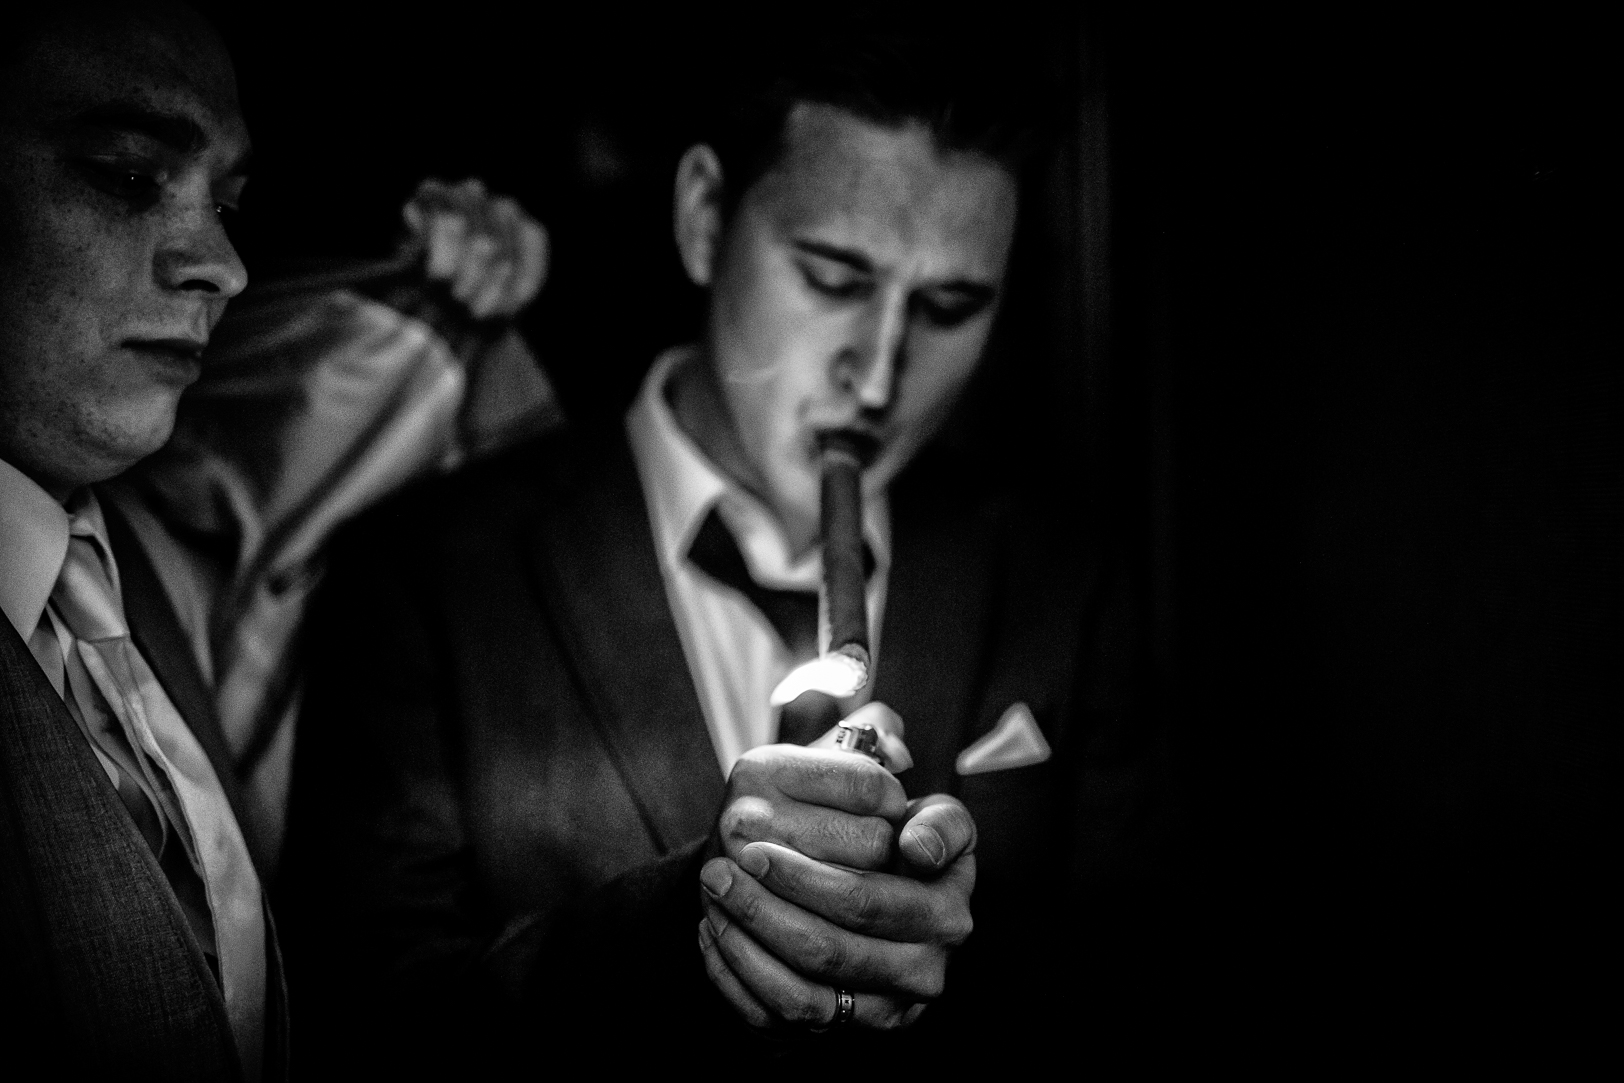 Photo of Groom Smoking Cigar